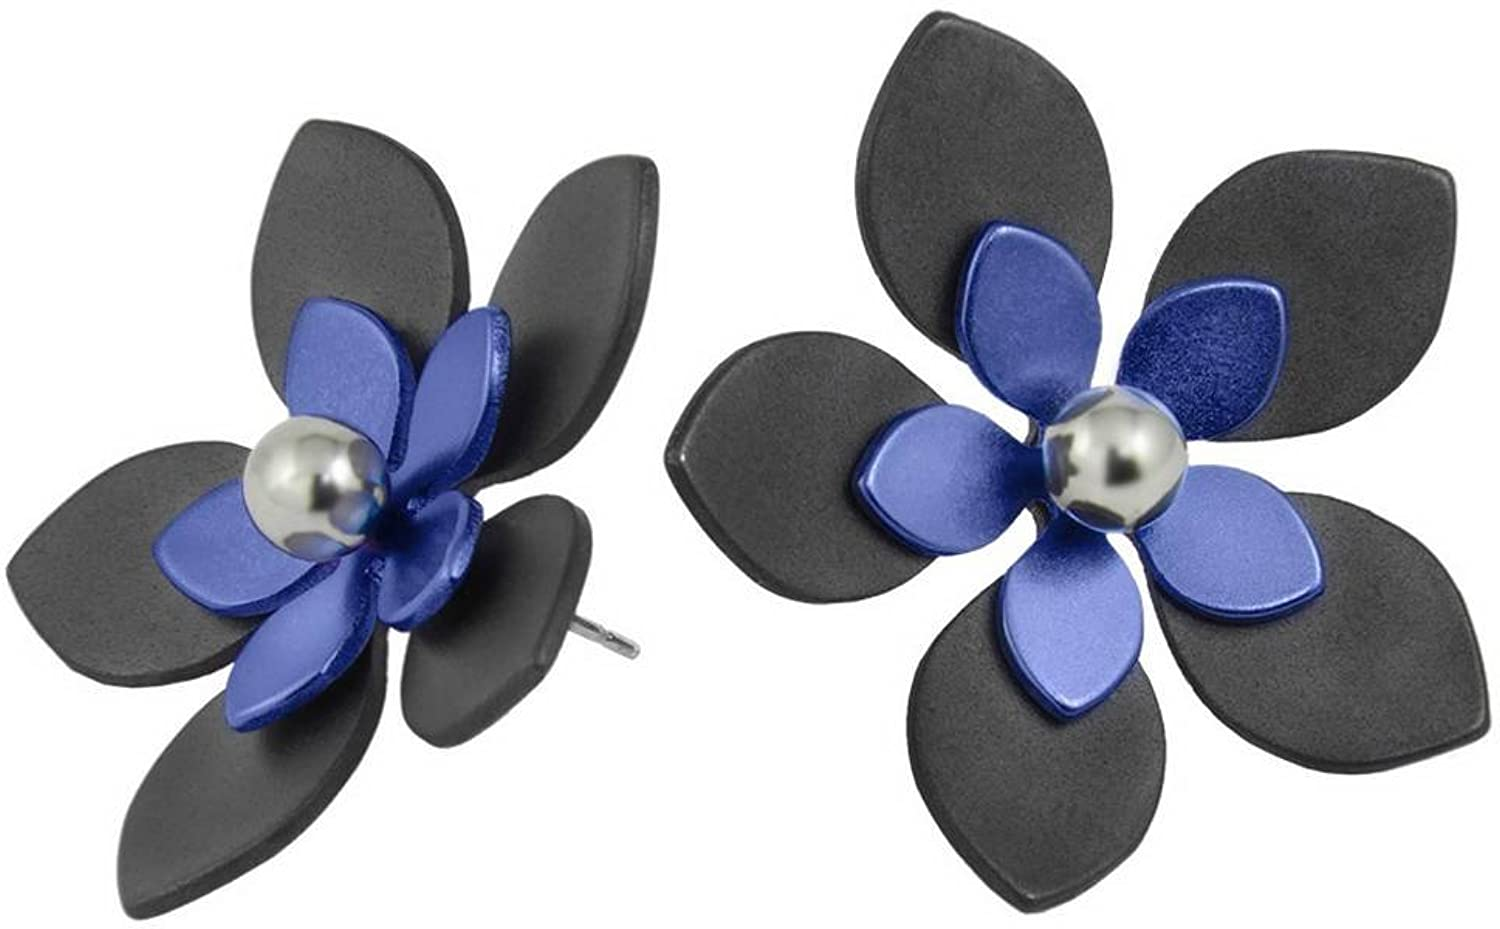 Black Navy 33mm Five Double Petal Flower Stud Earrings by Ti2 Titanium